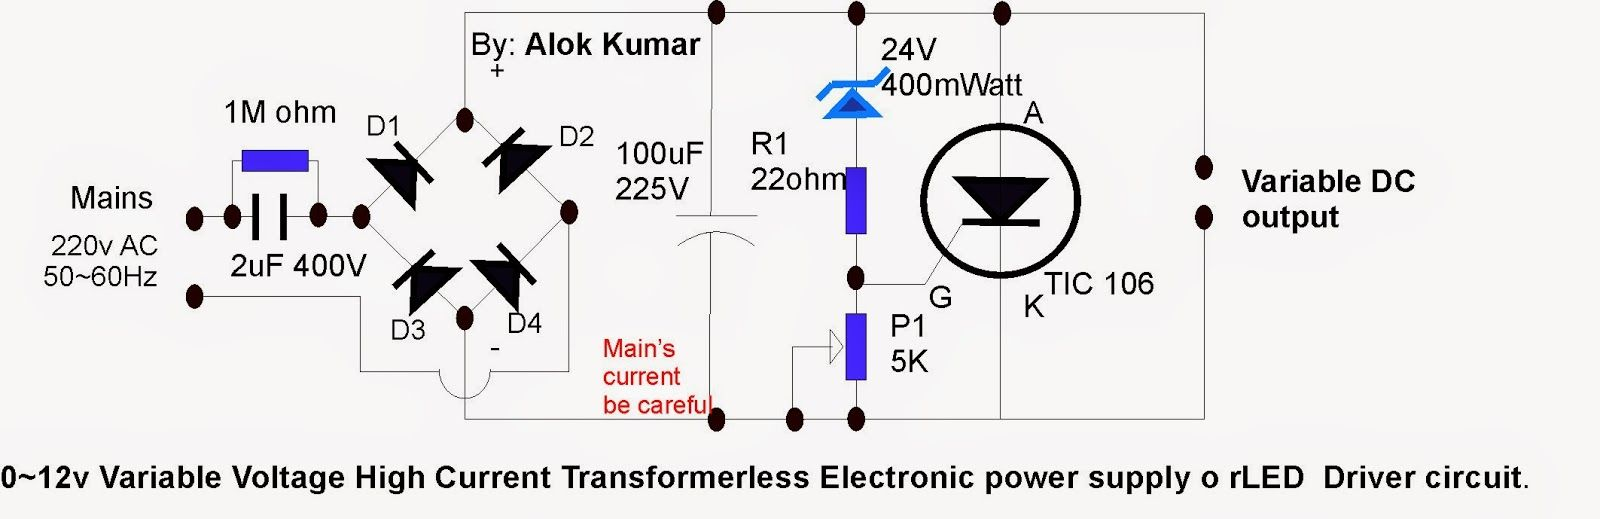 small resolution of electronic circuits transformerless power supply led drivers battery chargers solar circuits how to make 0 to 12v variable high current transformerless